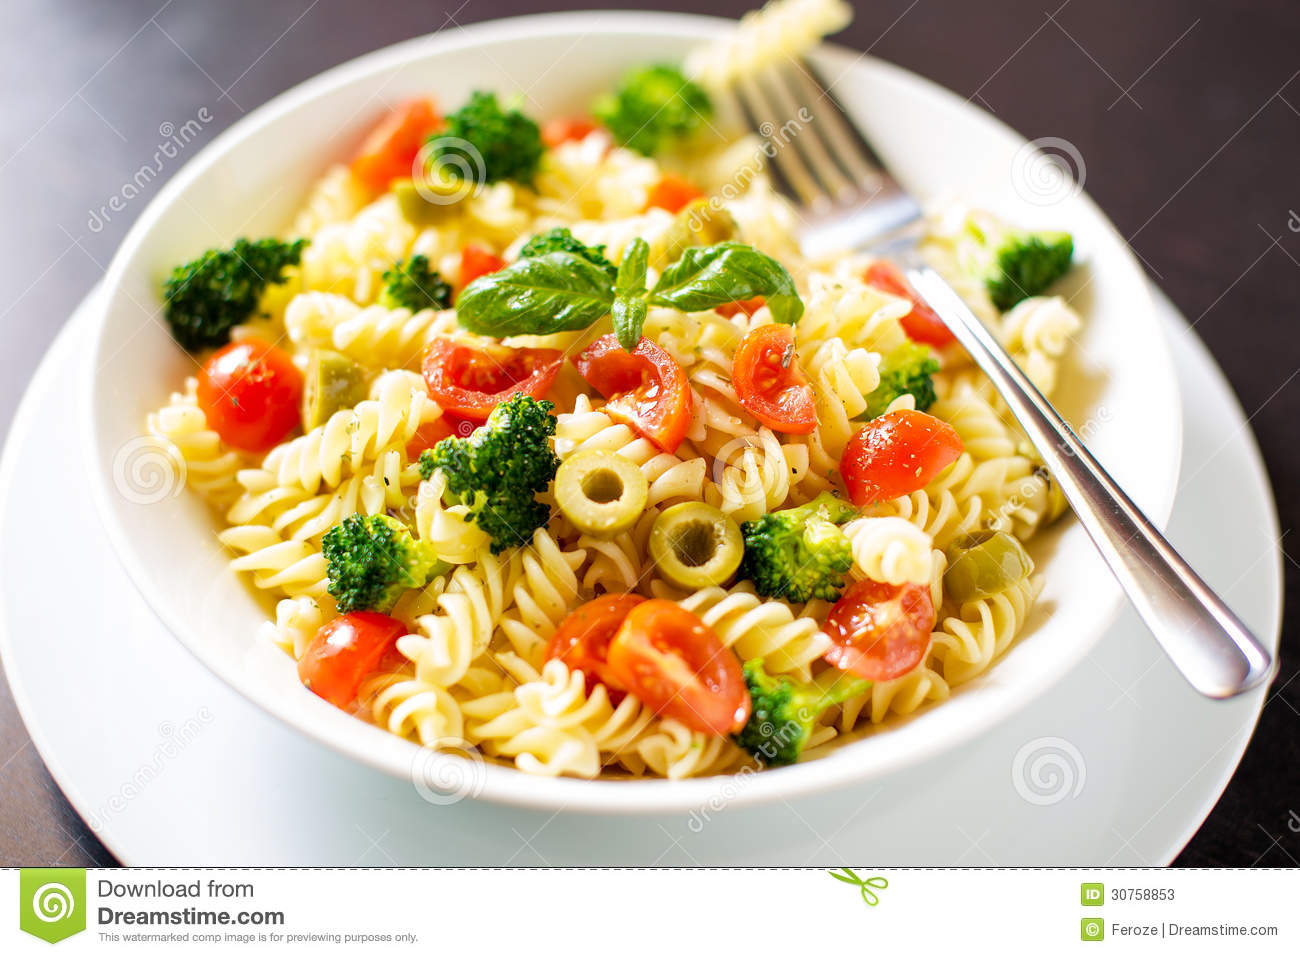 Fusilli pasta with broccoli, tomatoes, olives and basil.